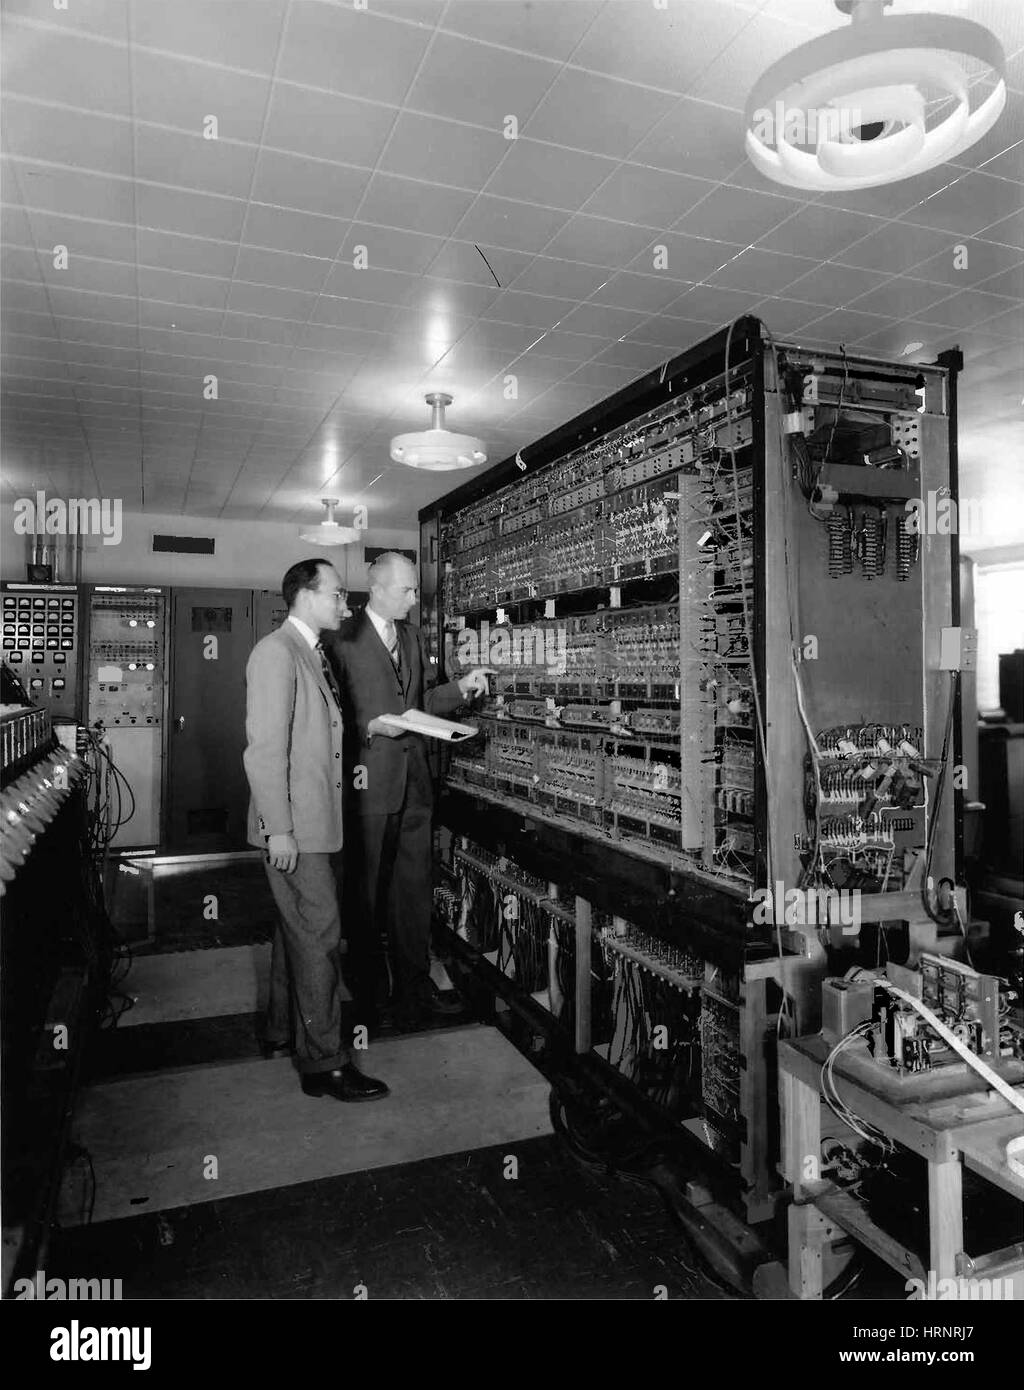 AVIDAC, Early Computer, 1953 - Stock Image